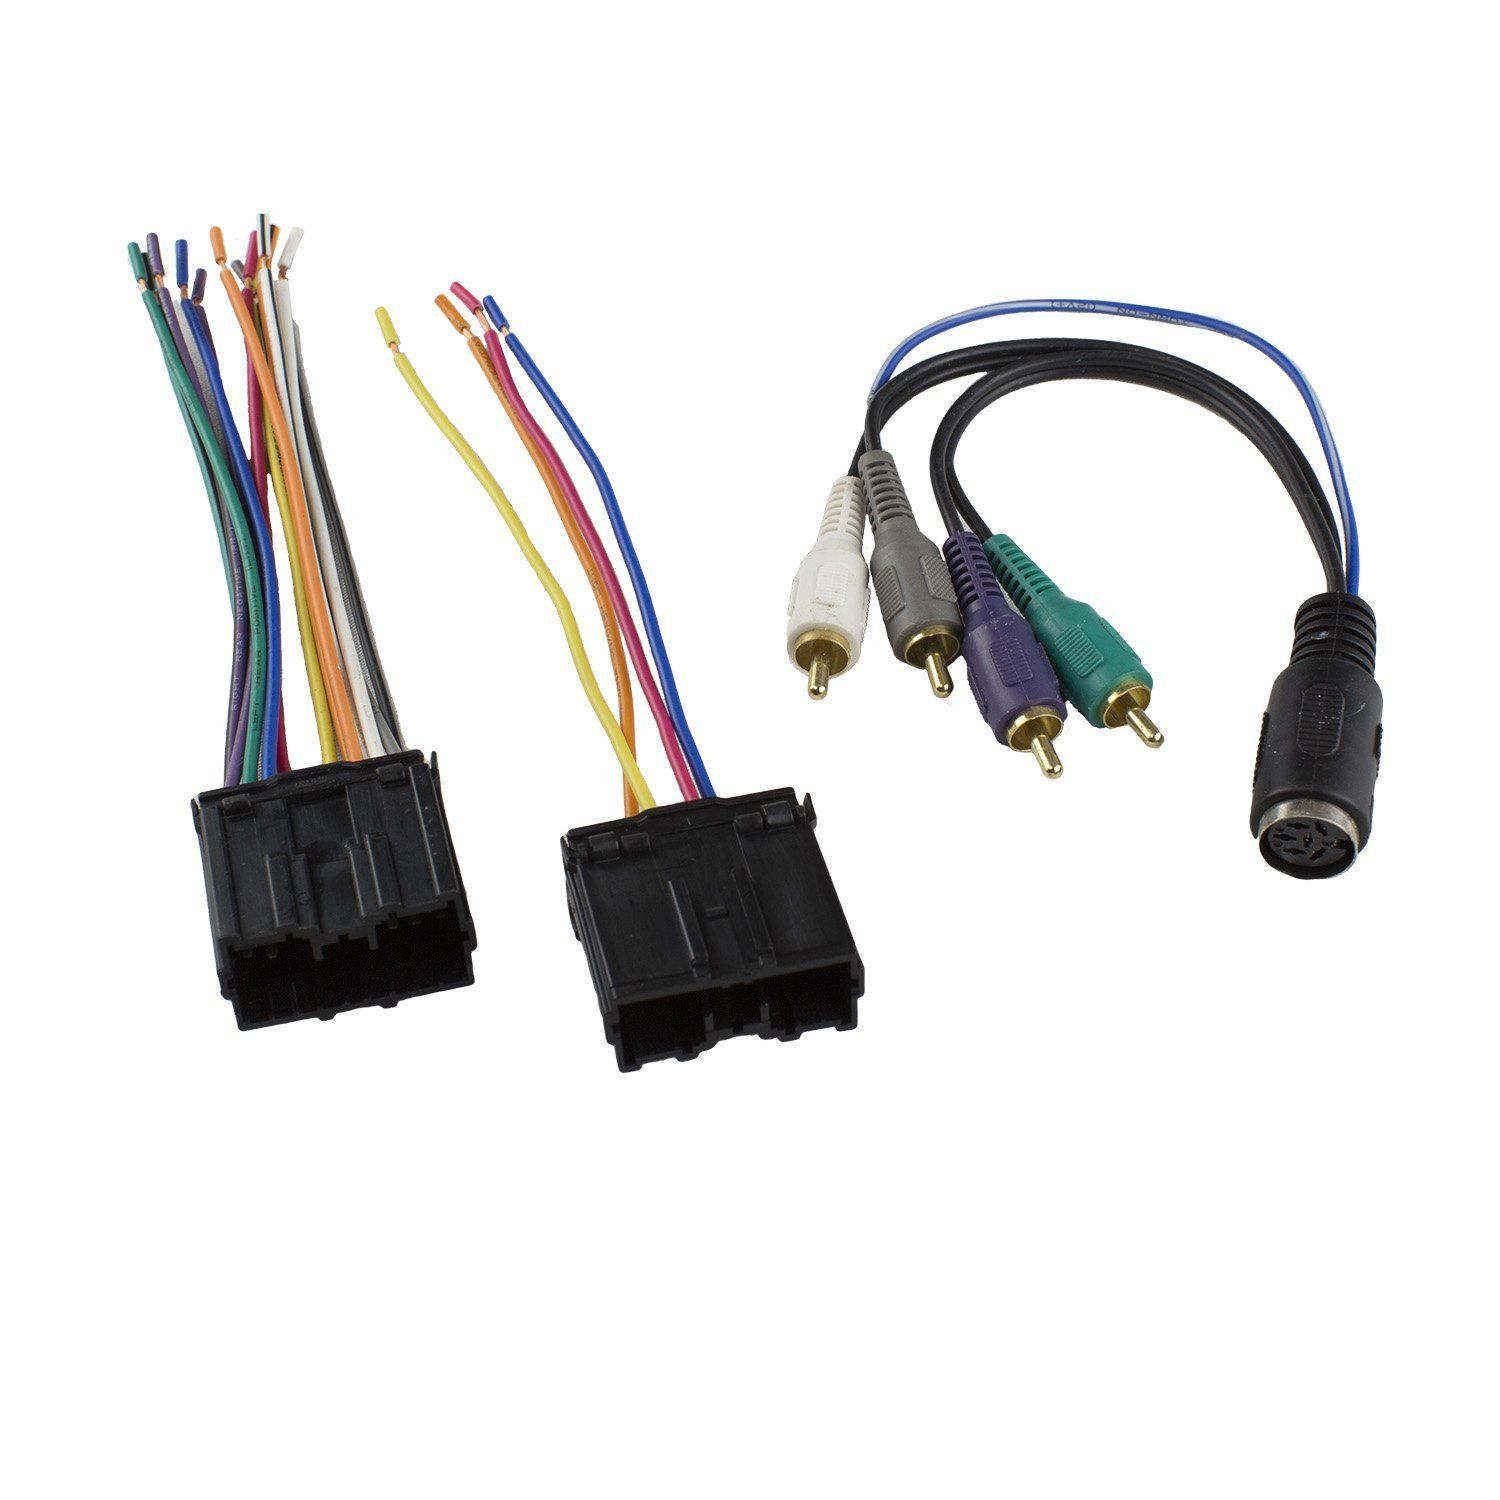 novosonics mif 7004 wiring harness for mitsubishi 4 speaker with amp integration 1994 2007 fits existing connector in your vehicle no cutting existing  [ 1500 x 1500 Pixel ]